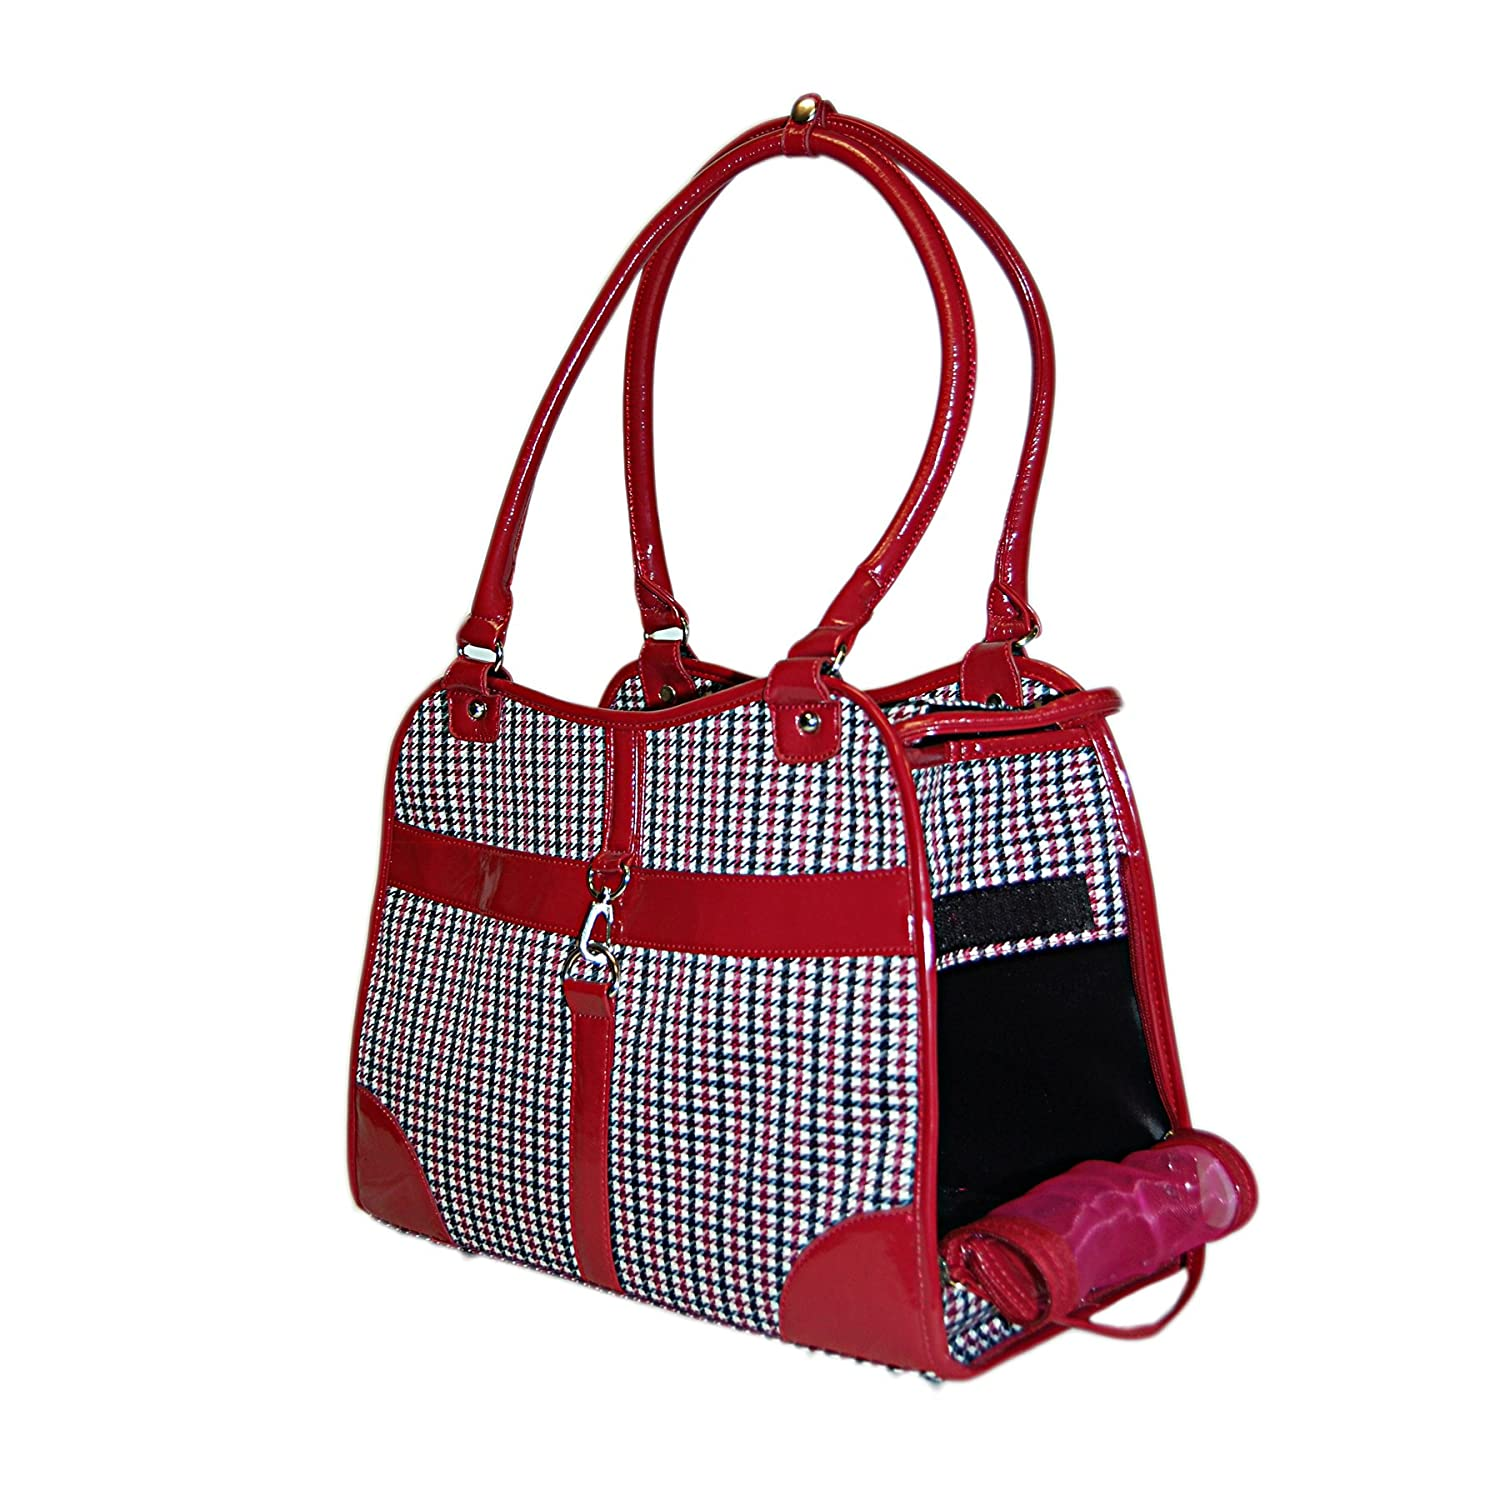 Anima Pet Carrier Purse for Dog, Cat, Puppies,Houndstooth Print Foldable Pet Handbag Tote For Travel, Hiking, Outdoor [13.5 x 6.5 x 10.5] Black Anima International Corp. 3912-BK